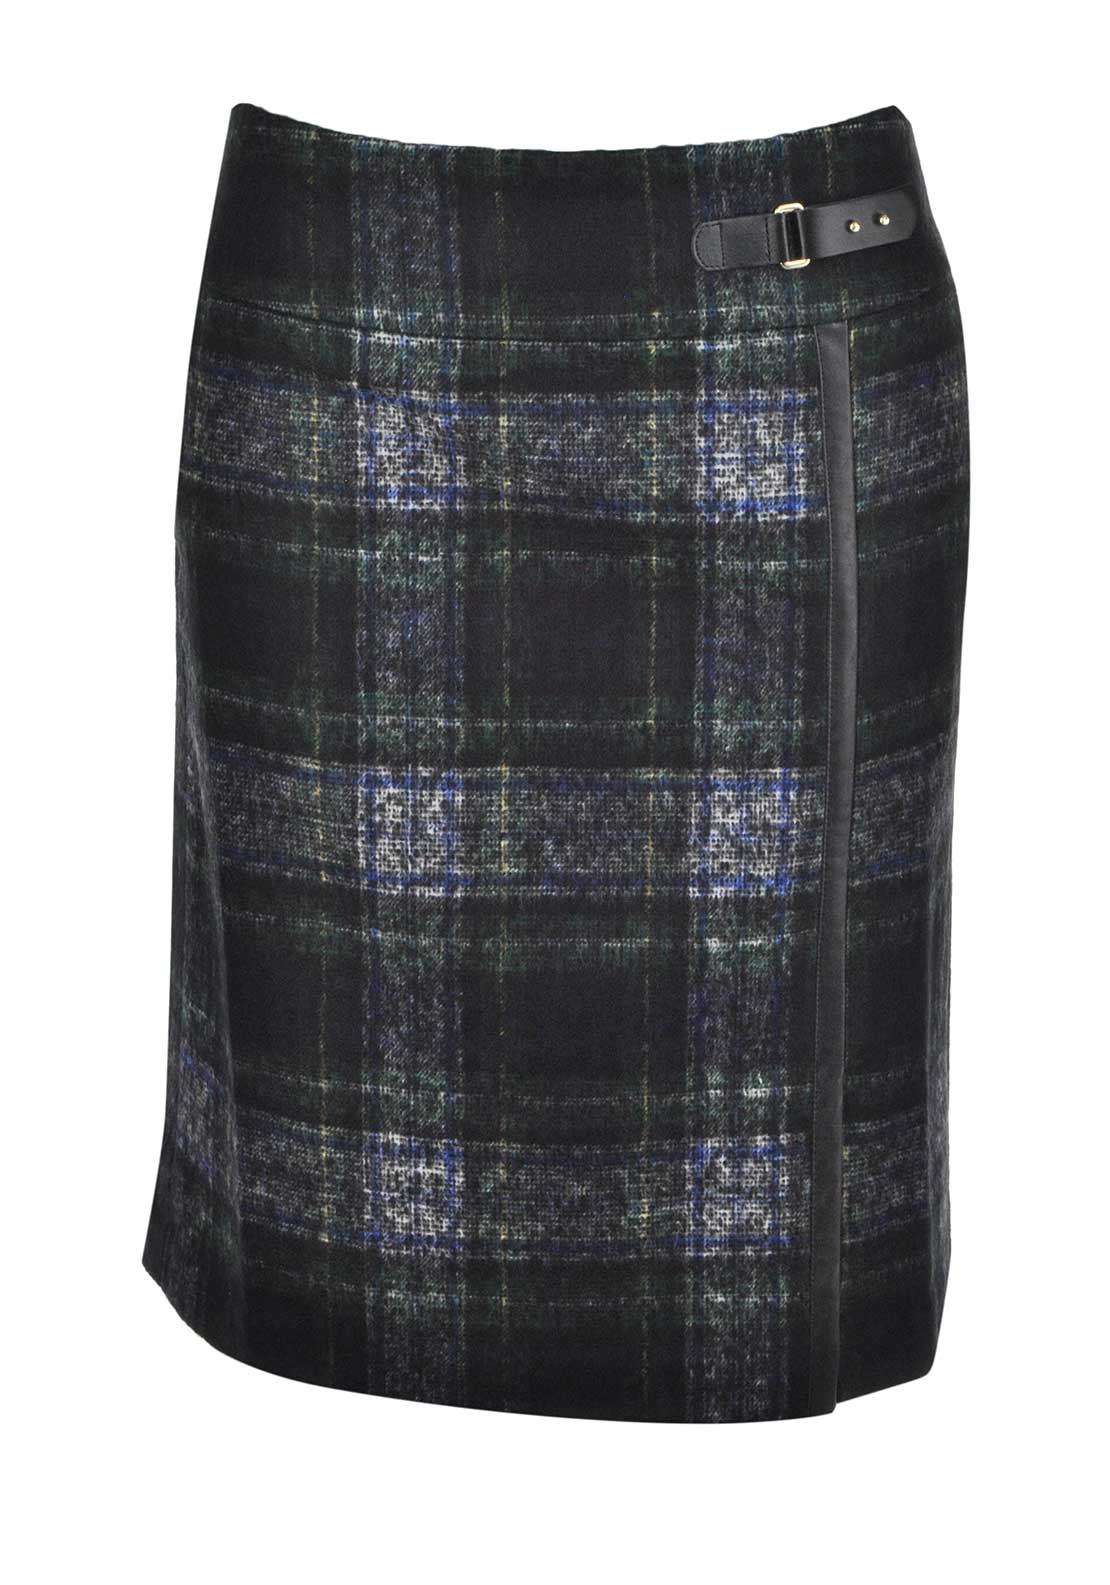 Gerry Weber Wool Blend Tartan Print Straight Skirt, Green Multi